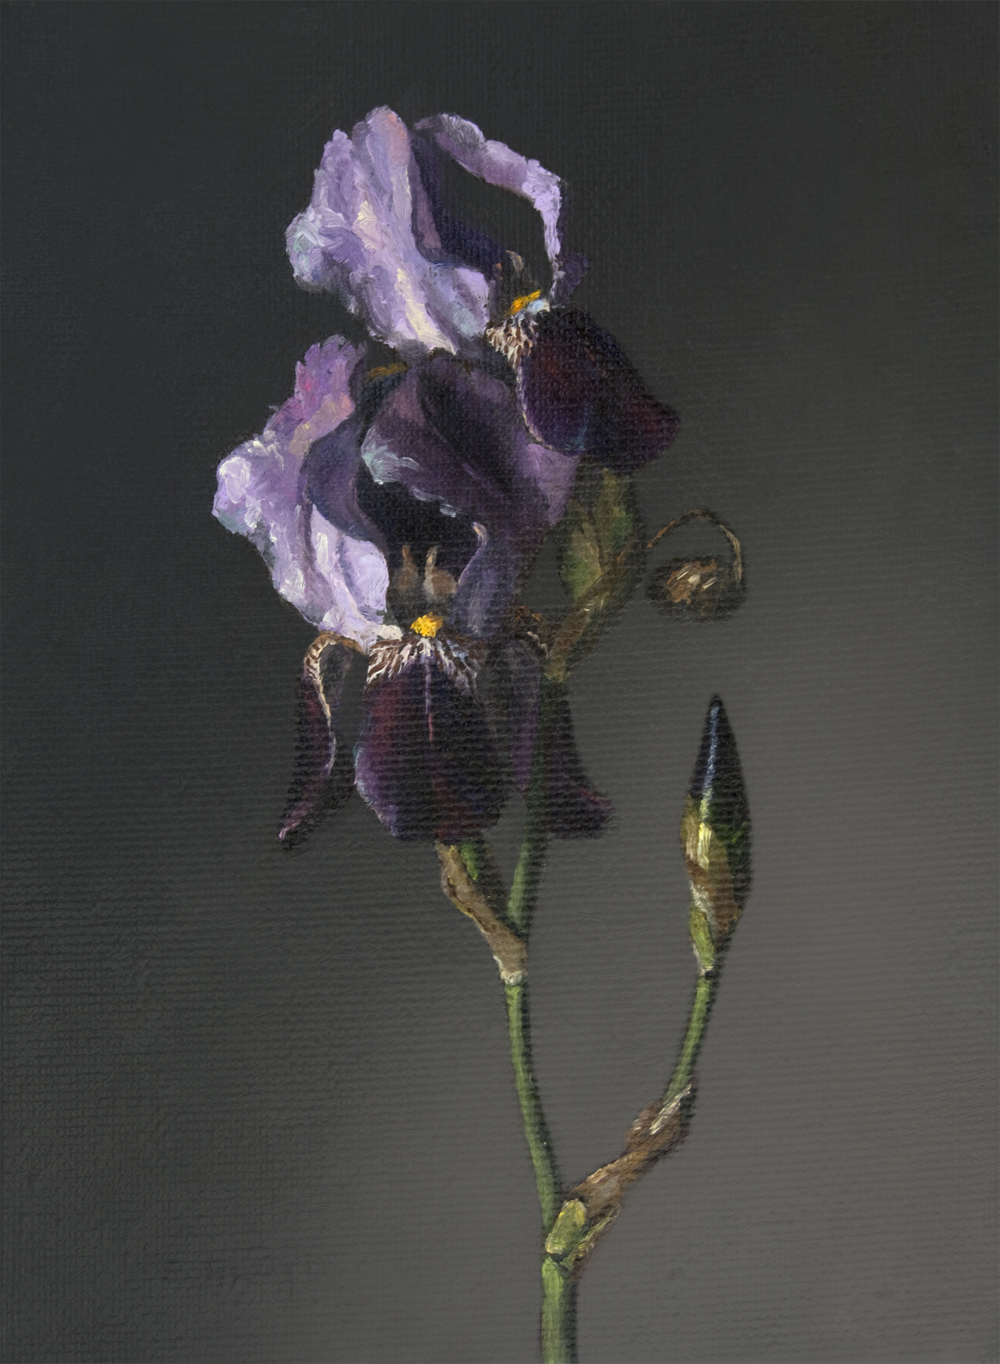 20150508-008-purple-irises-12x9.jpg